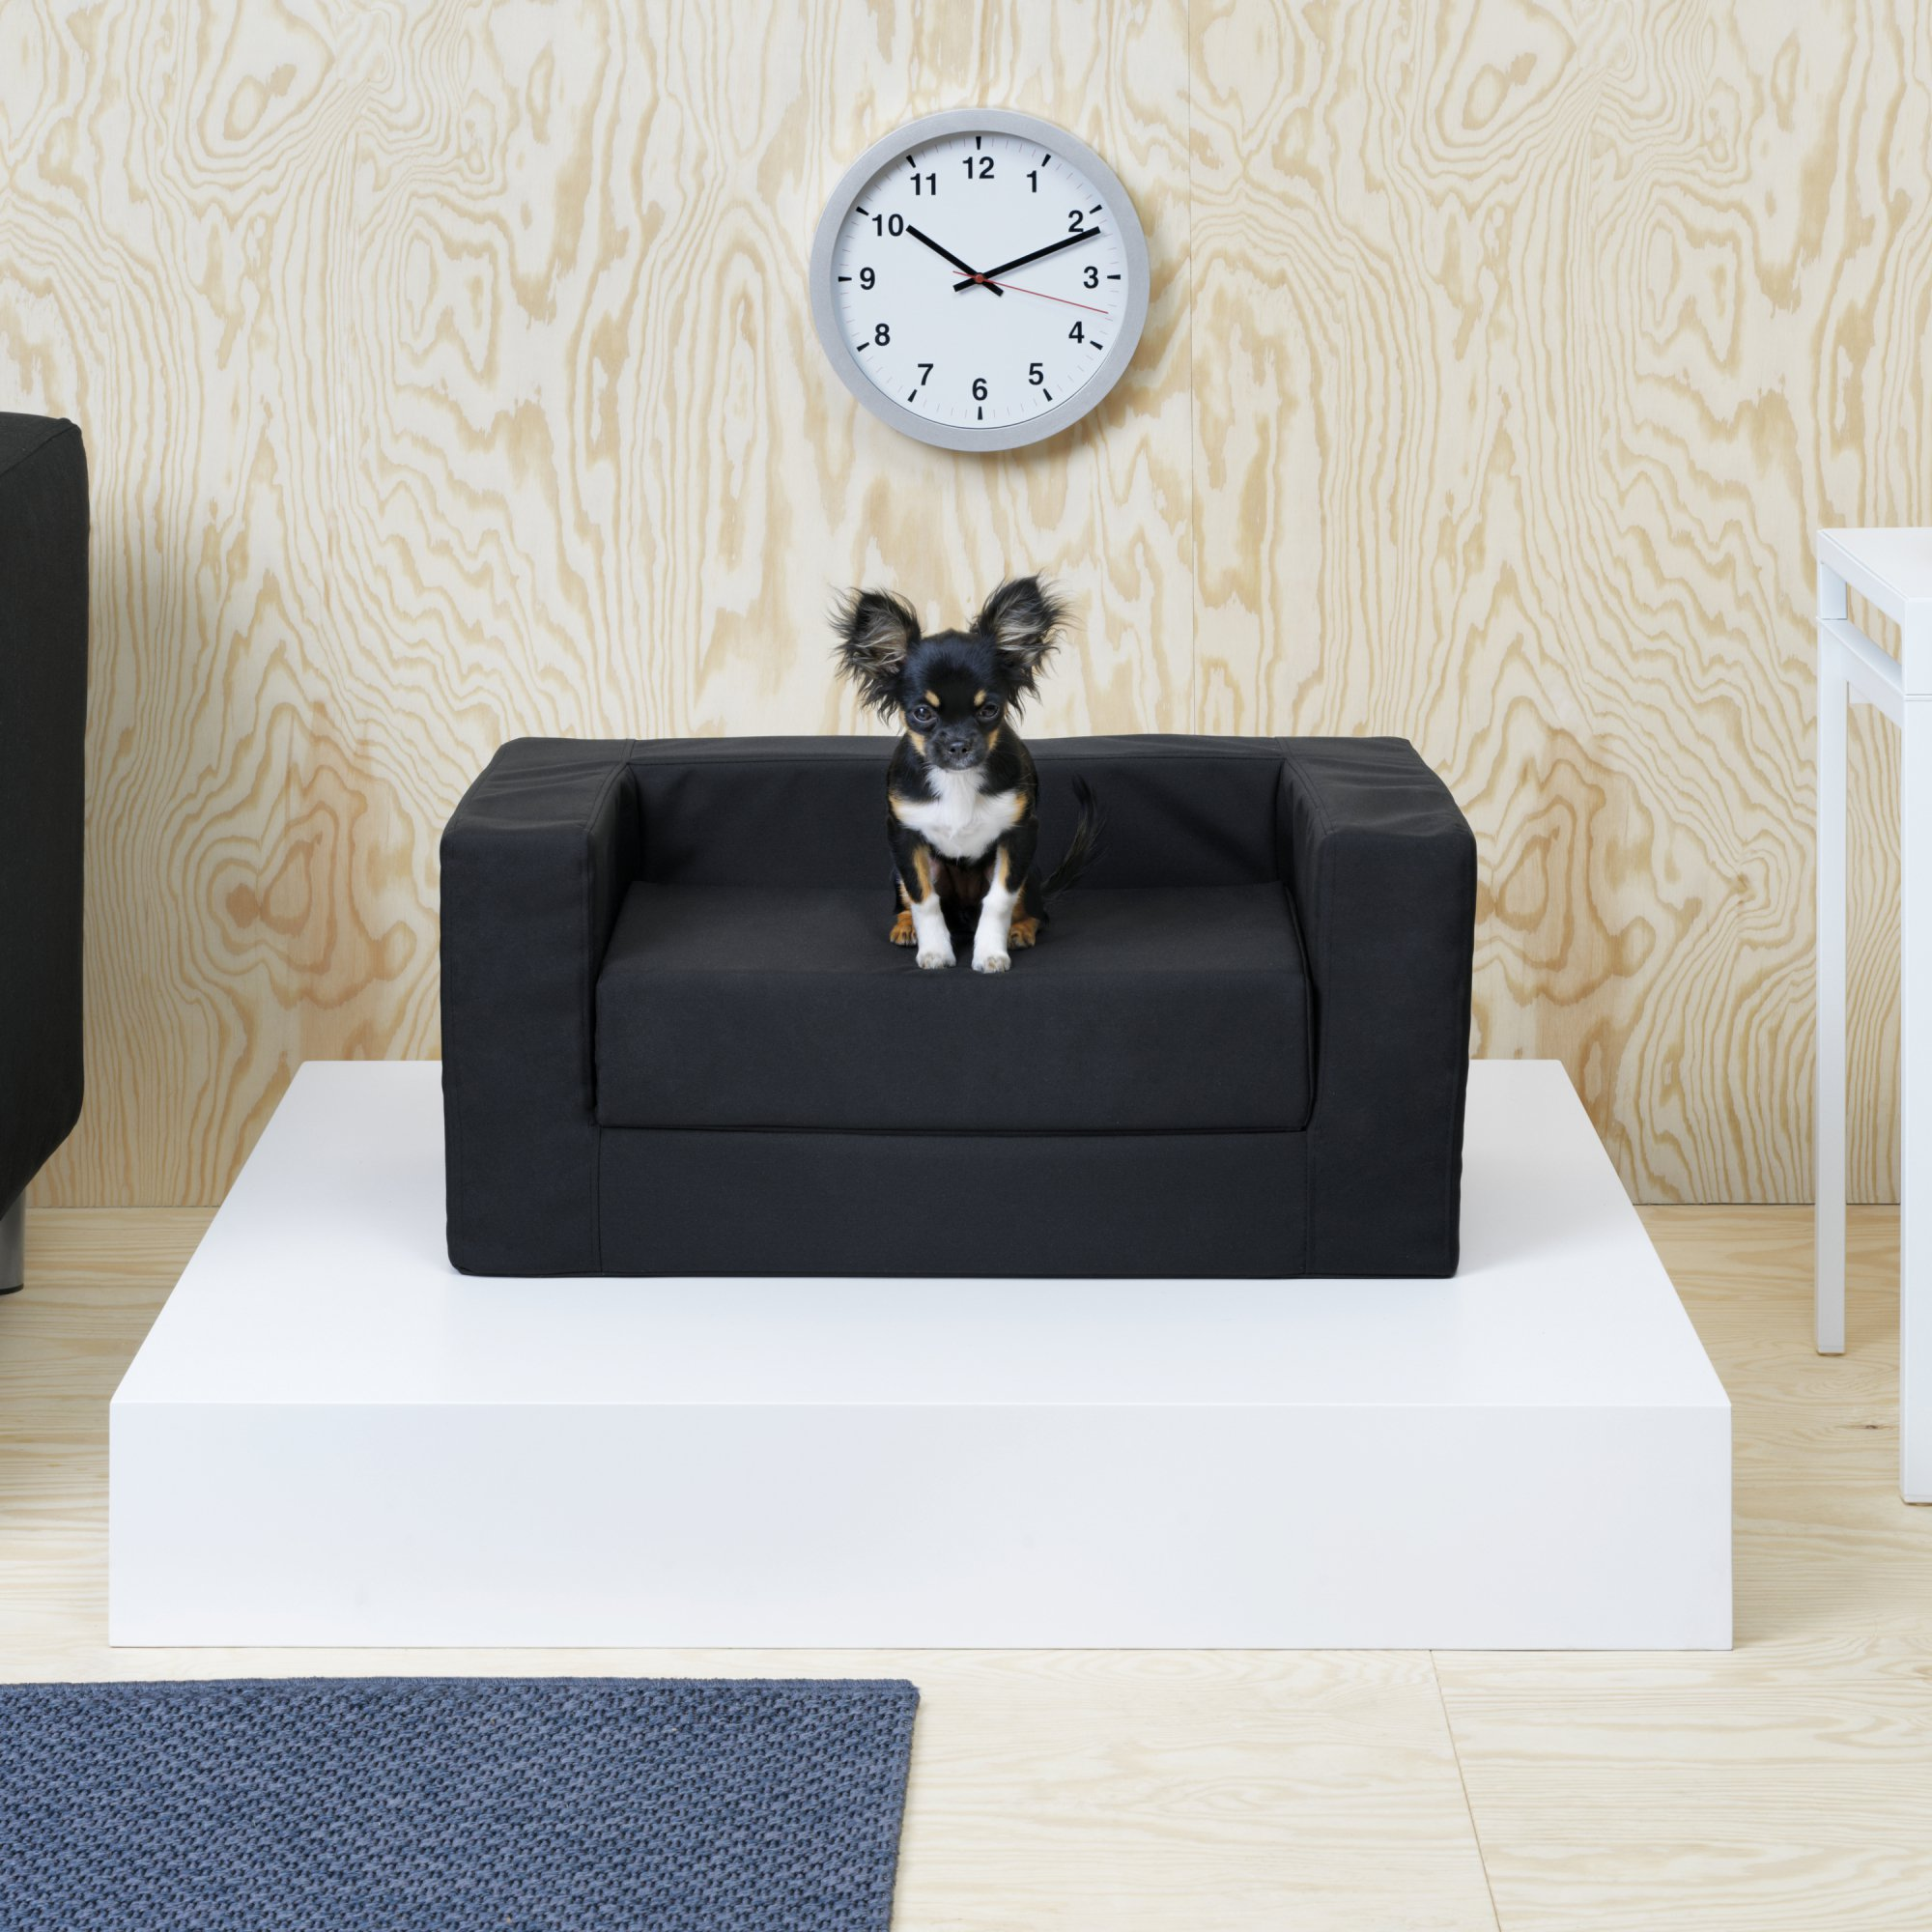 ikea lance lurvig une gamme pour animaux de compagnie guten morgwen. Black Bedroom Furniture Sets. Home Design Ideas